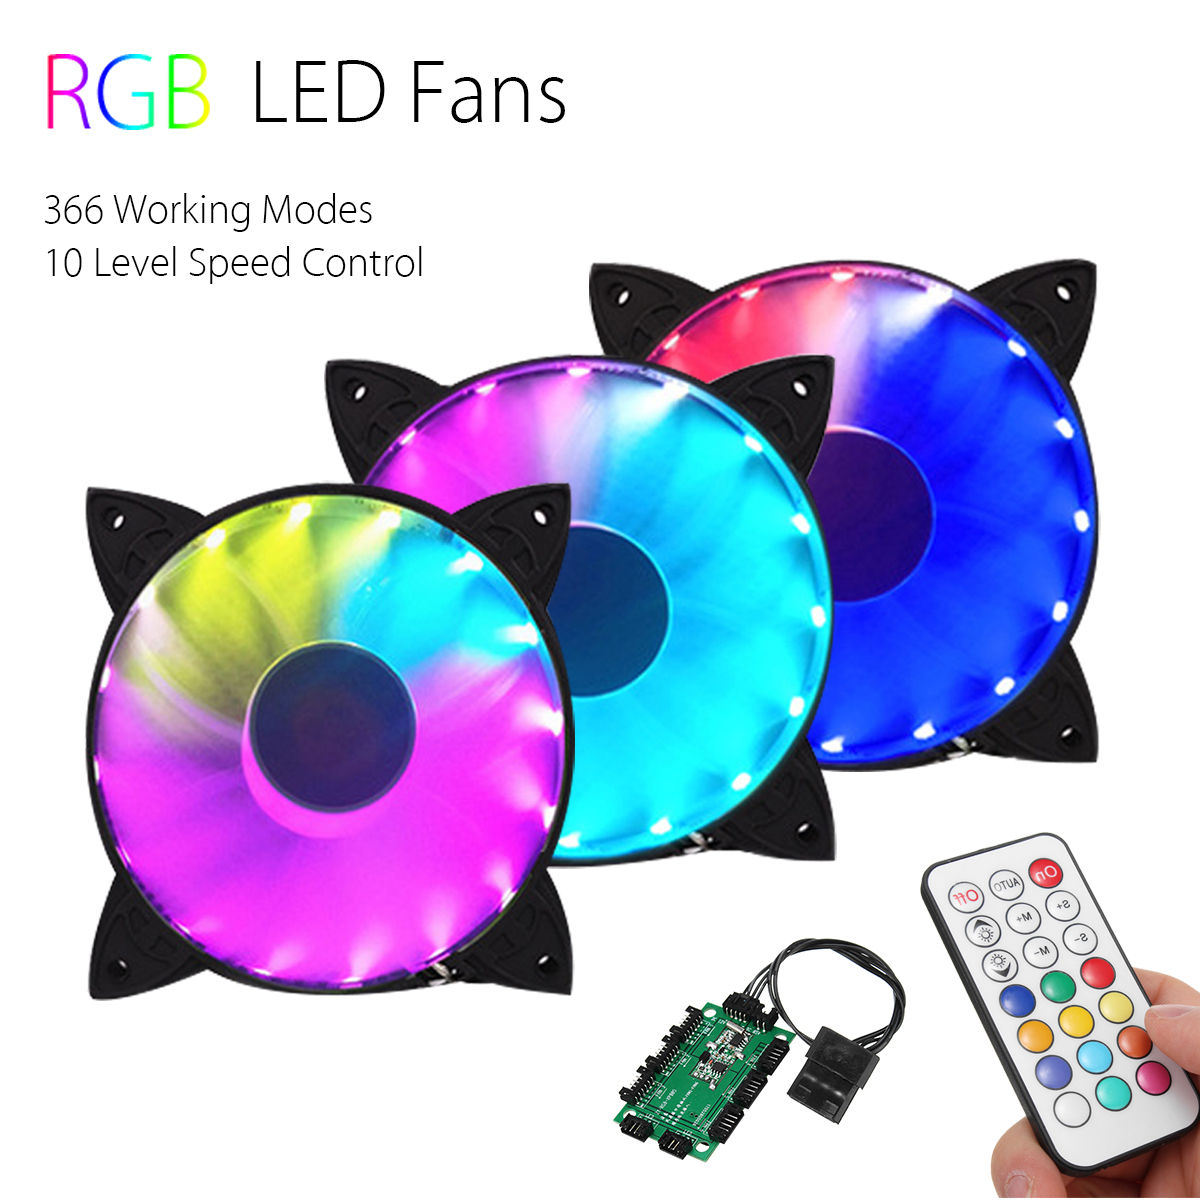 3PCS RGB Adjustable LED Cooling Fan 120mm with Remote Control + Controller For Computer PC